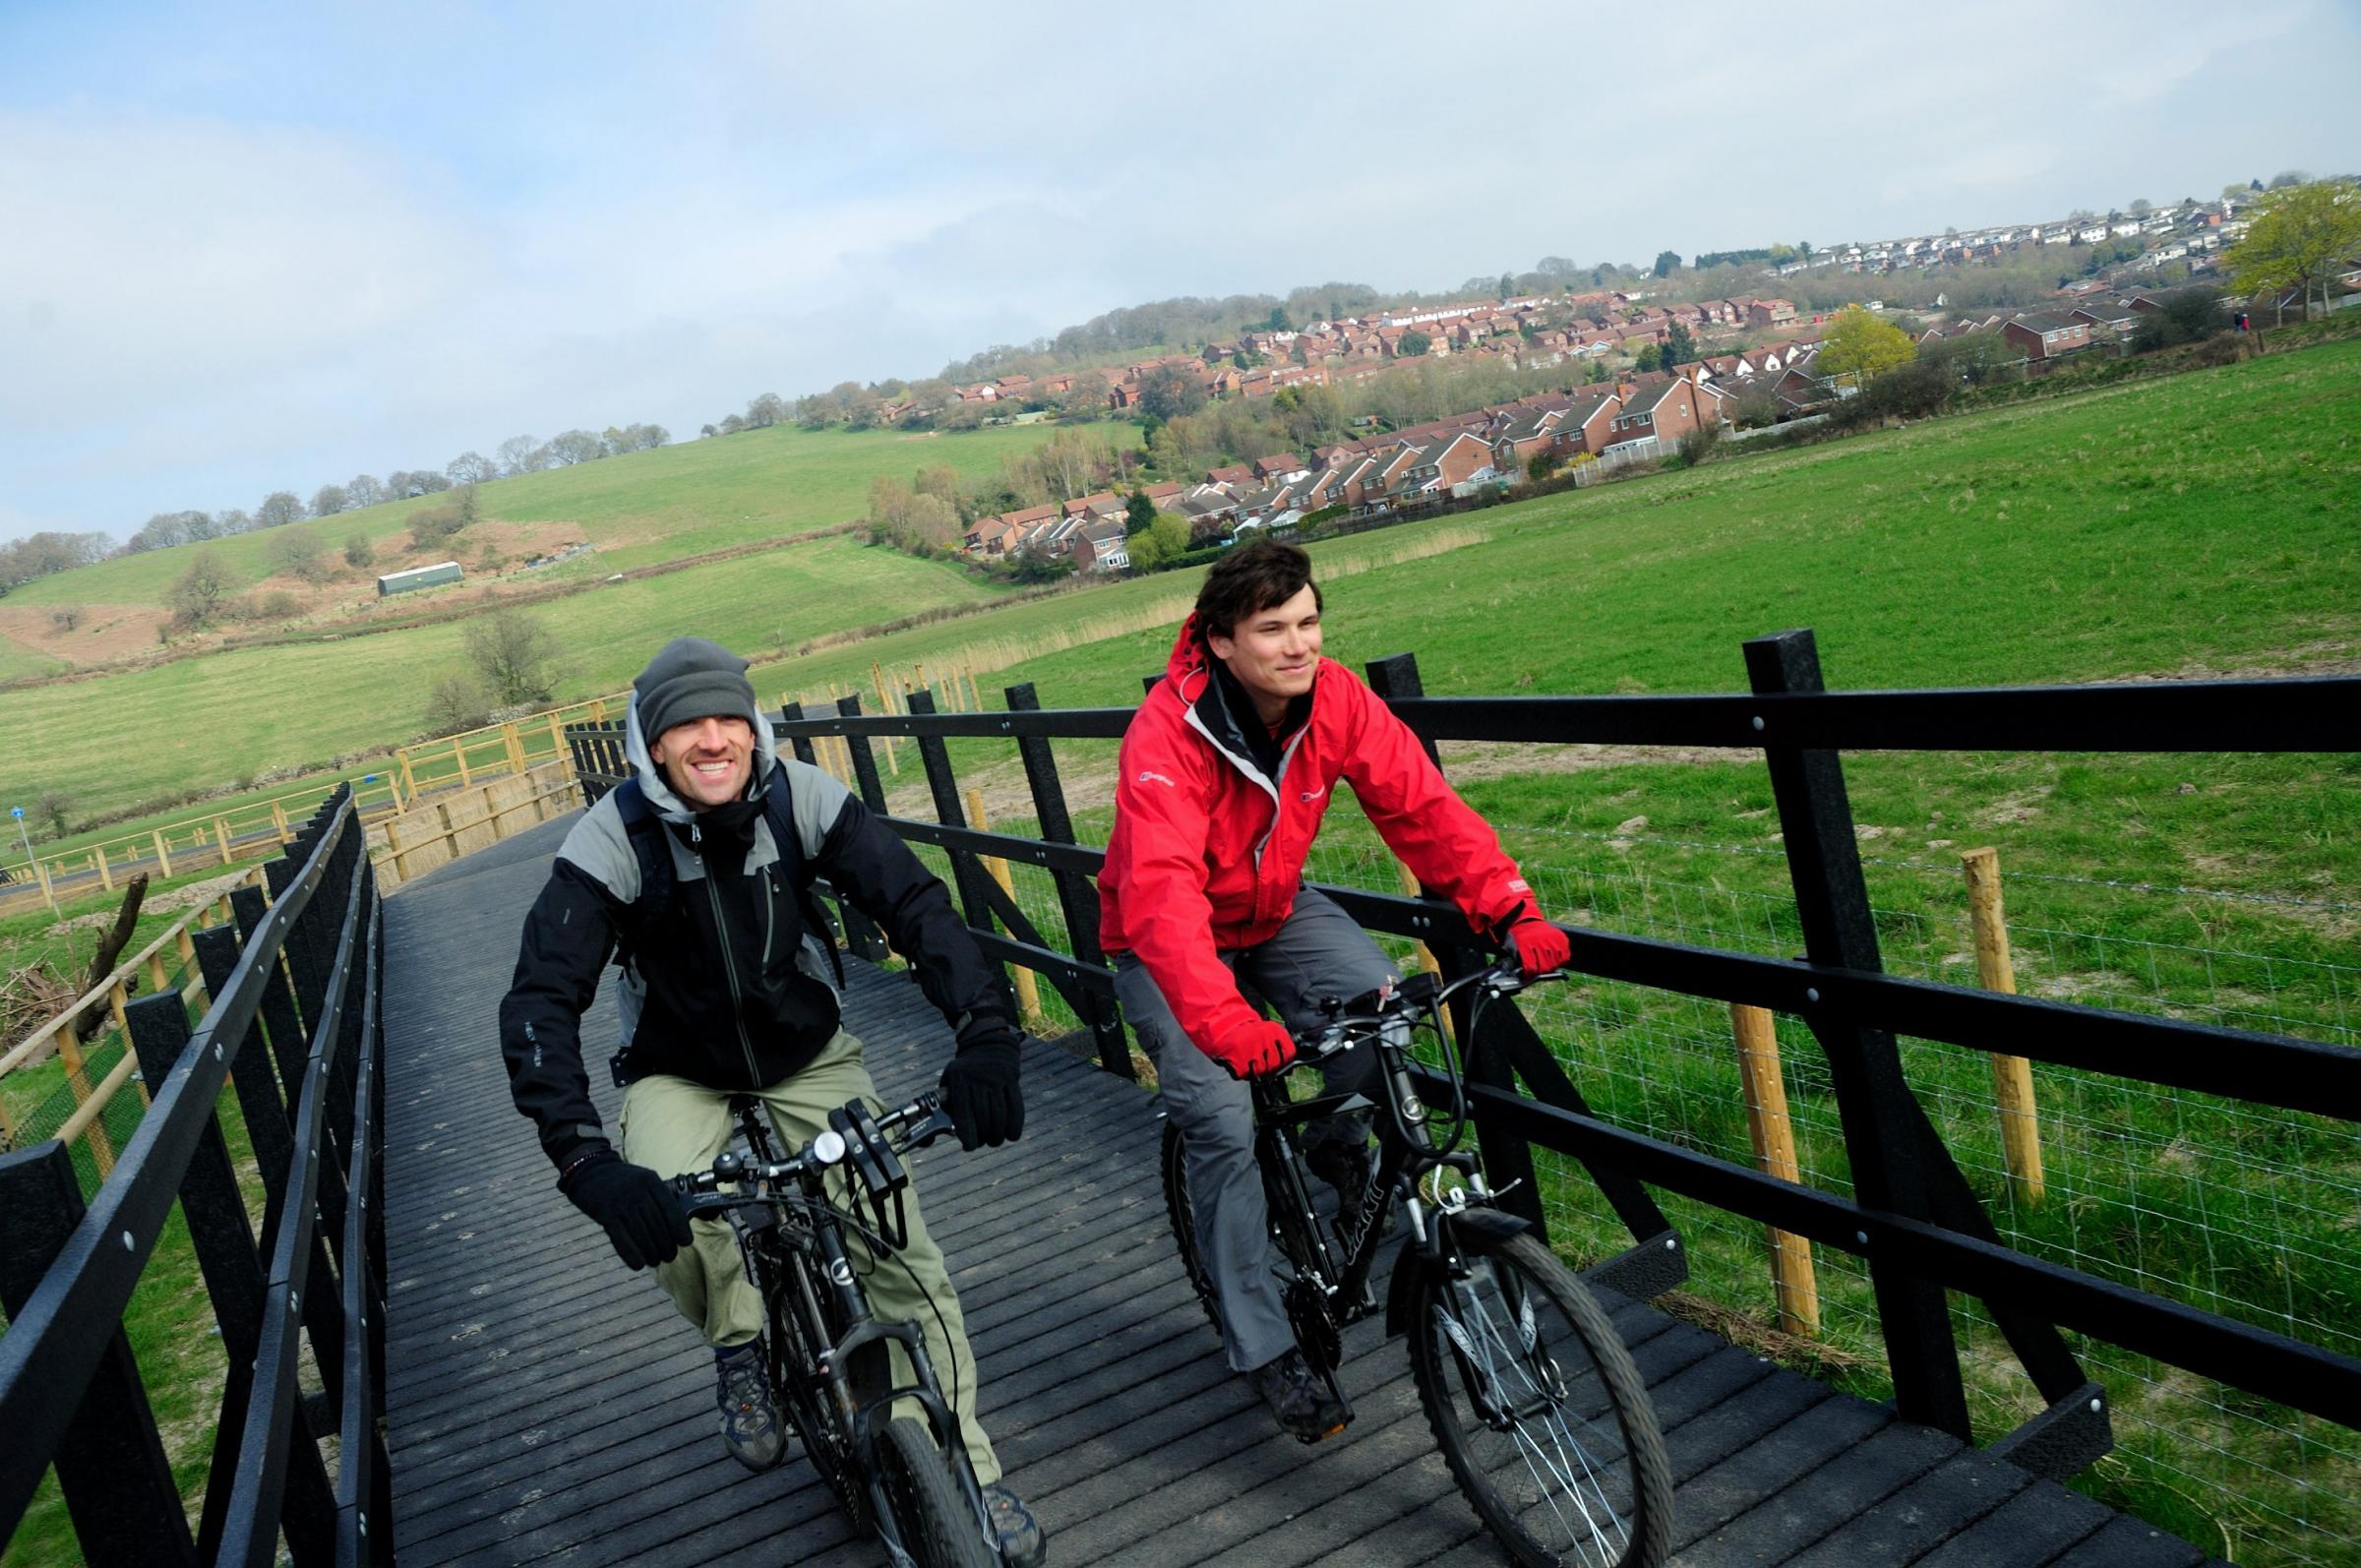 IT'S THE WEEKEND: The Great OUtdoors - Where to enjoy the National Cycle Network across Gwent